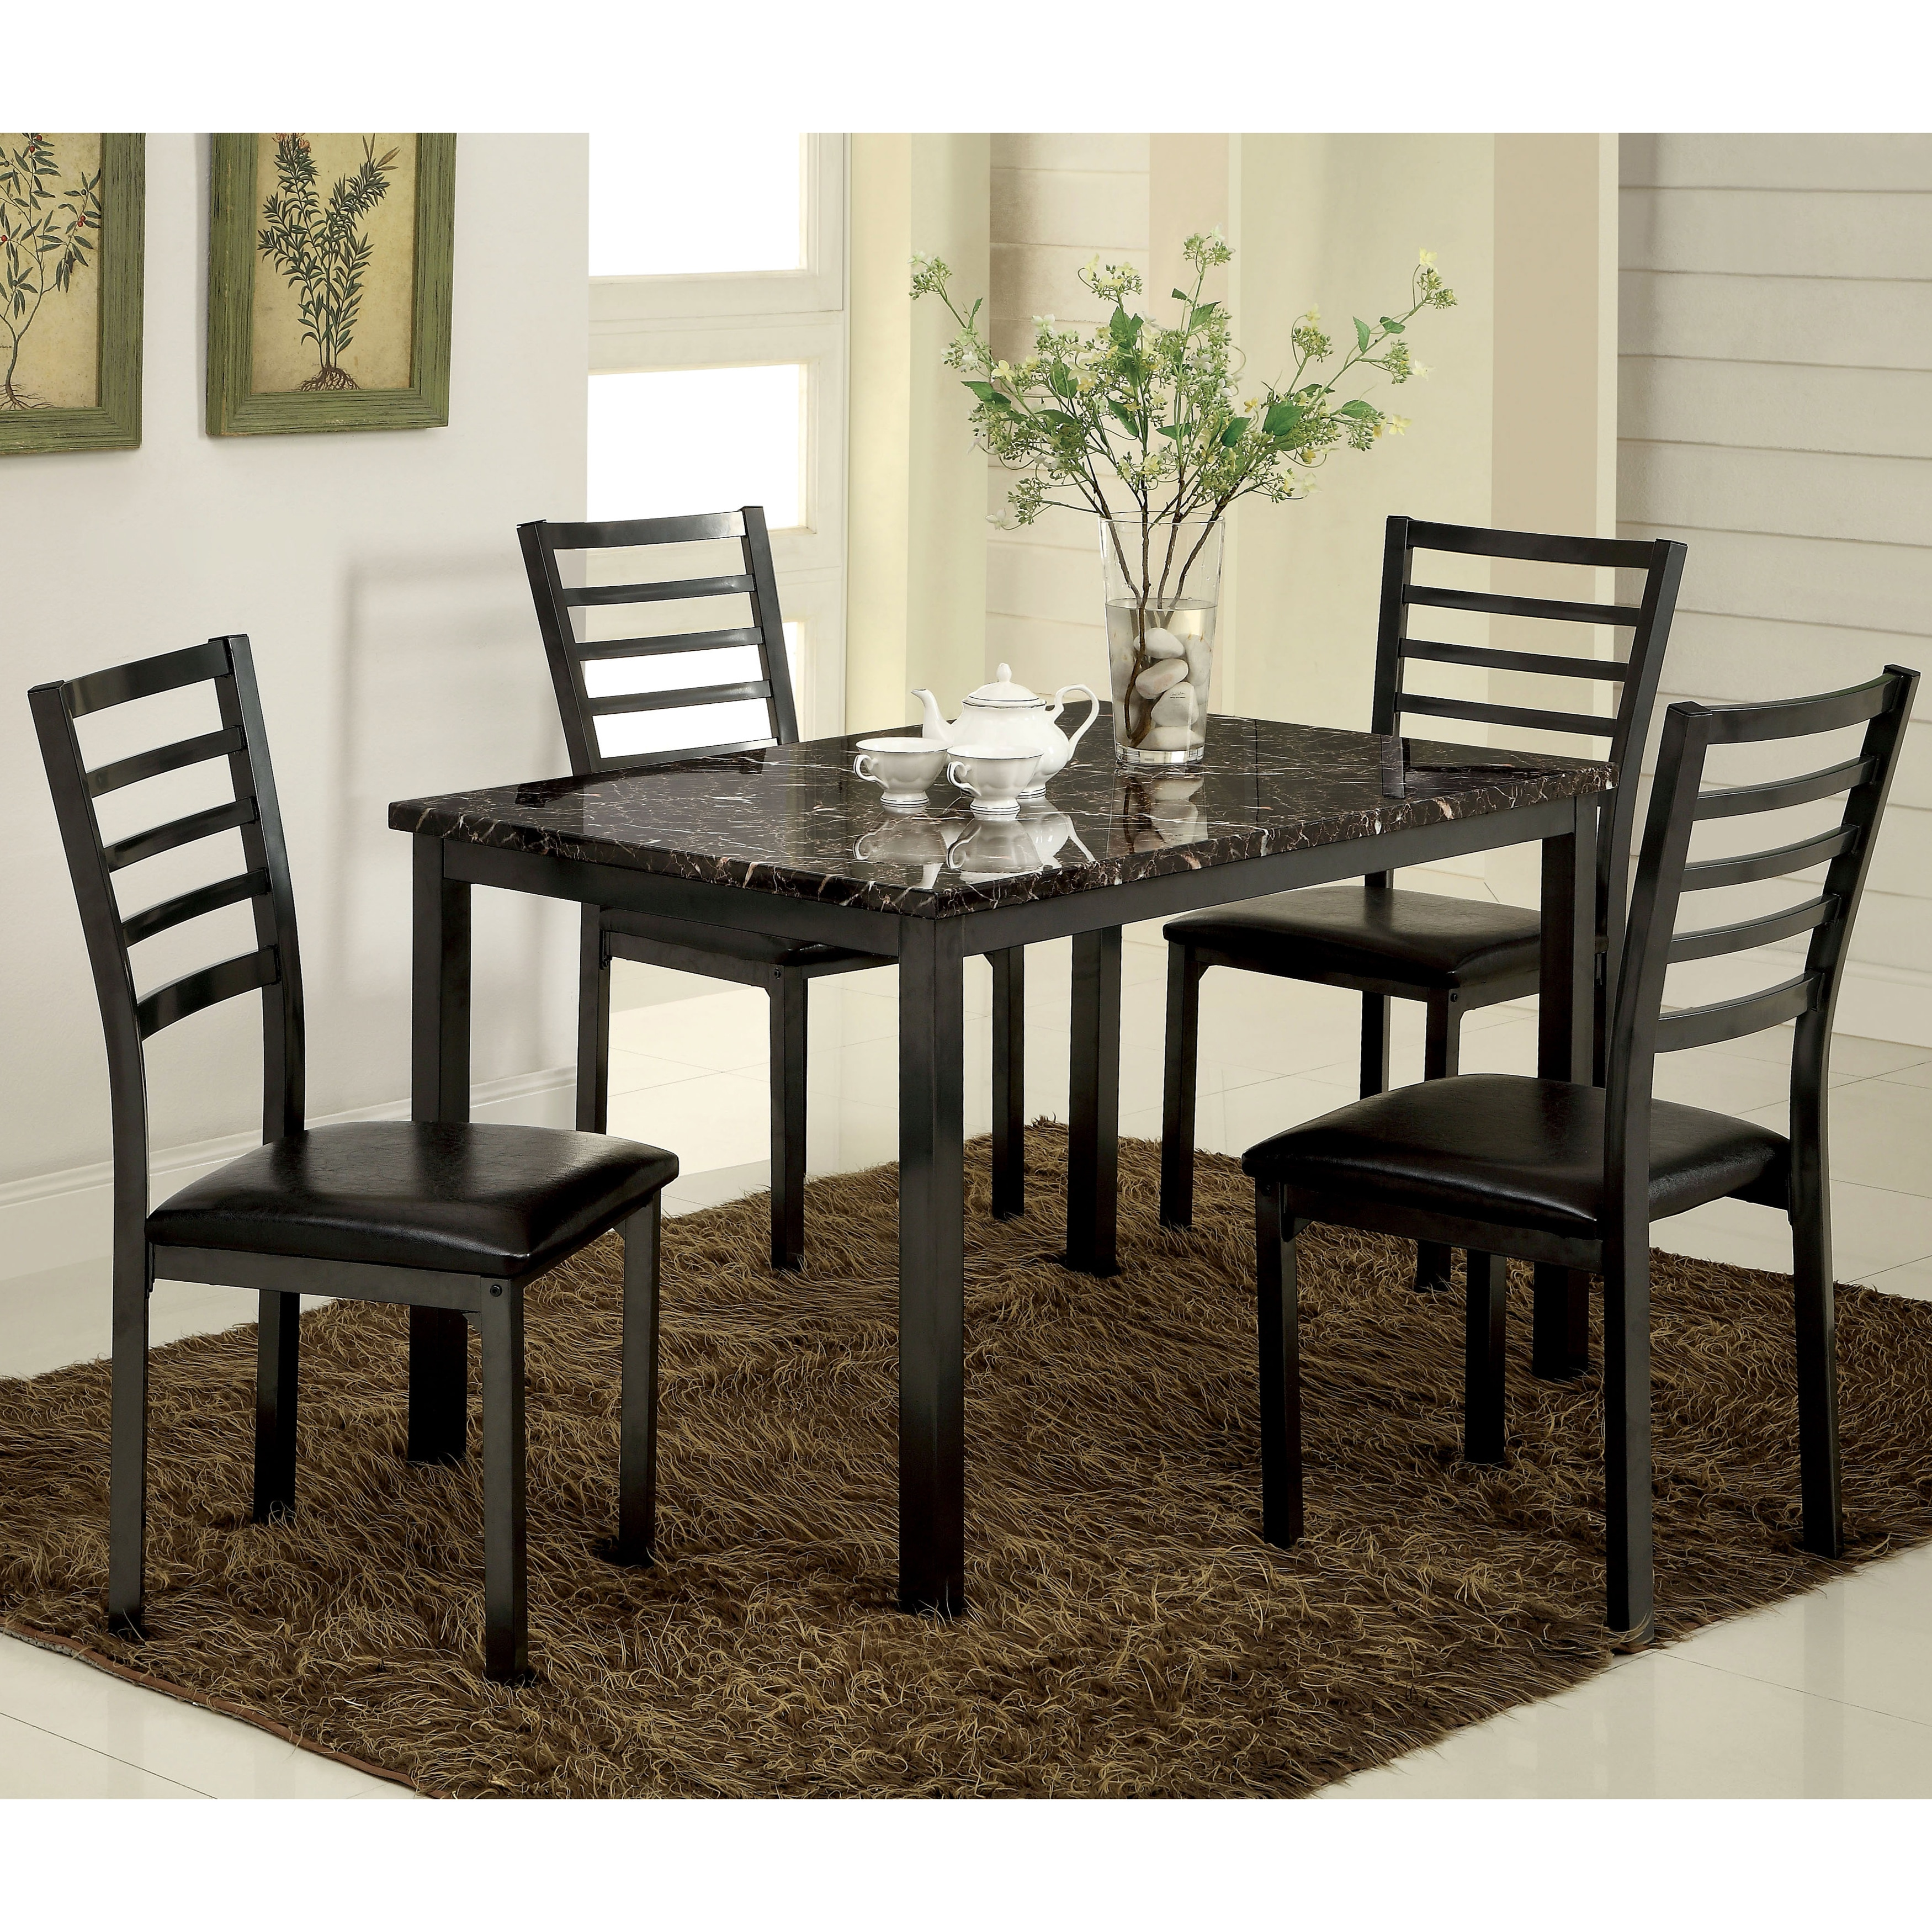 Shop Furniture Of America Hartley 5 Piece Black Dining Set   On Sale   Free  Shipping Today   Overstock.com   9936002